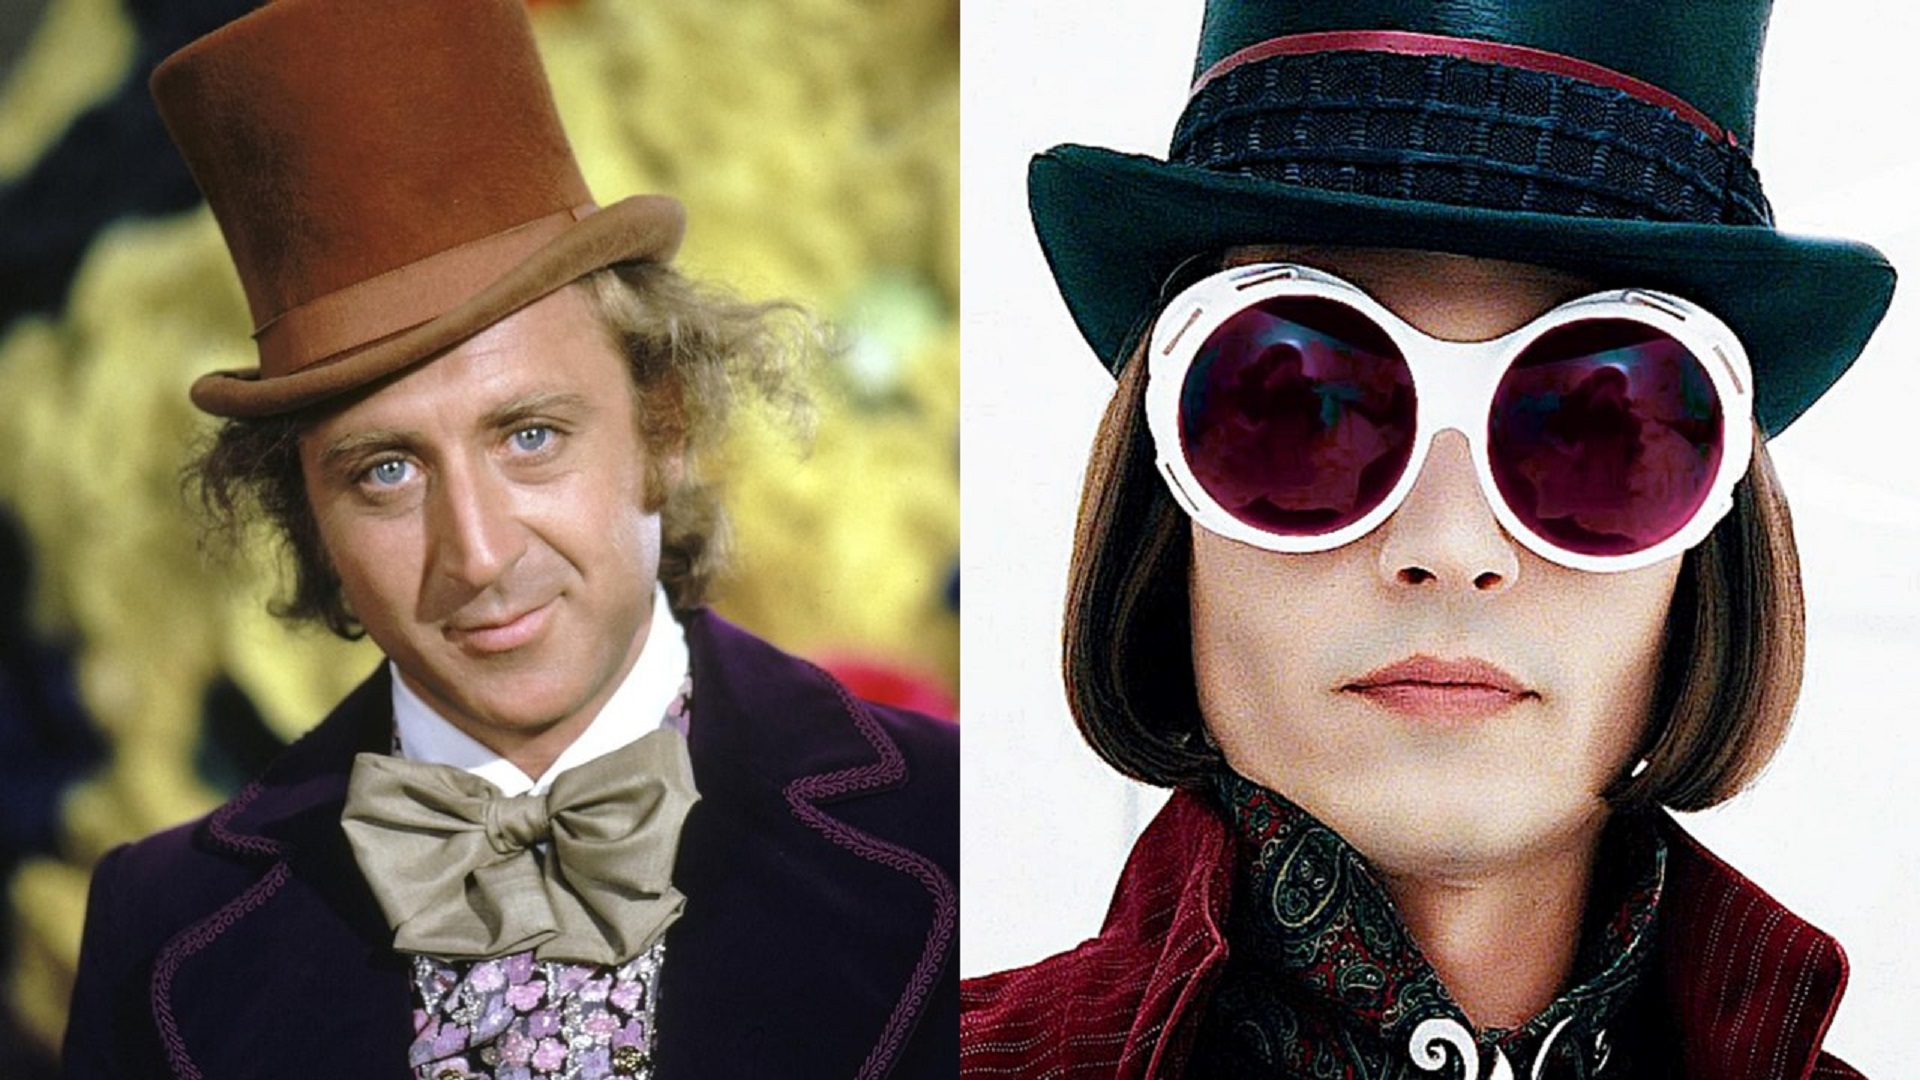 Willy Wonka tendrá una precuela.